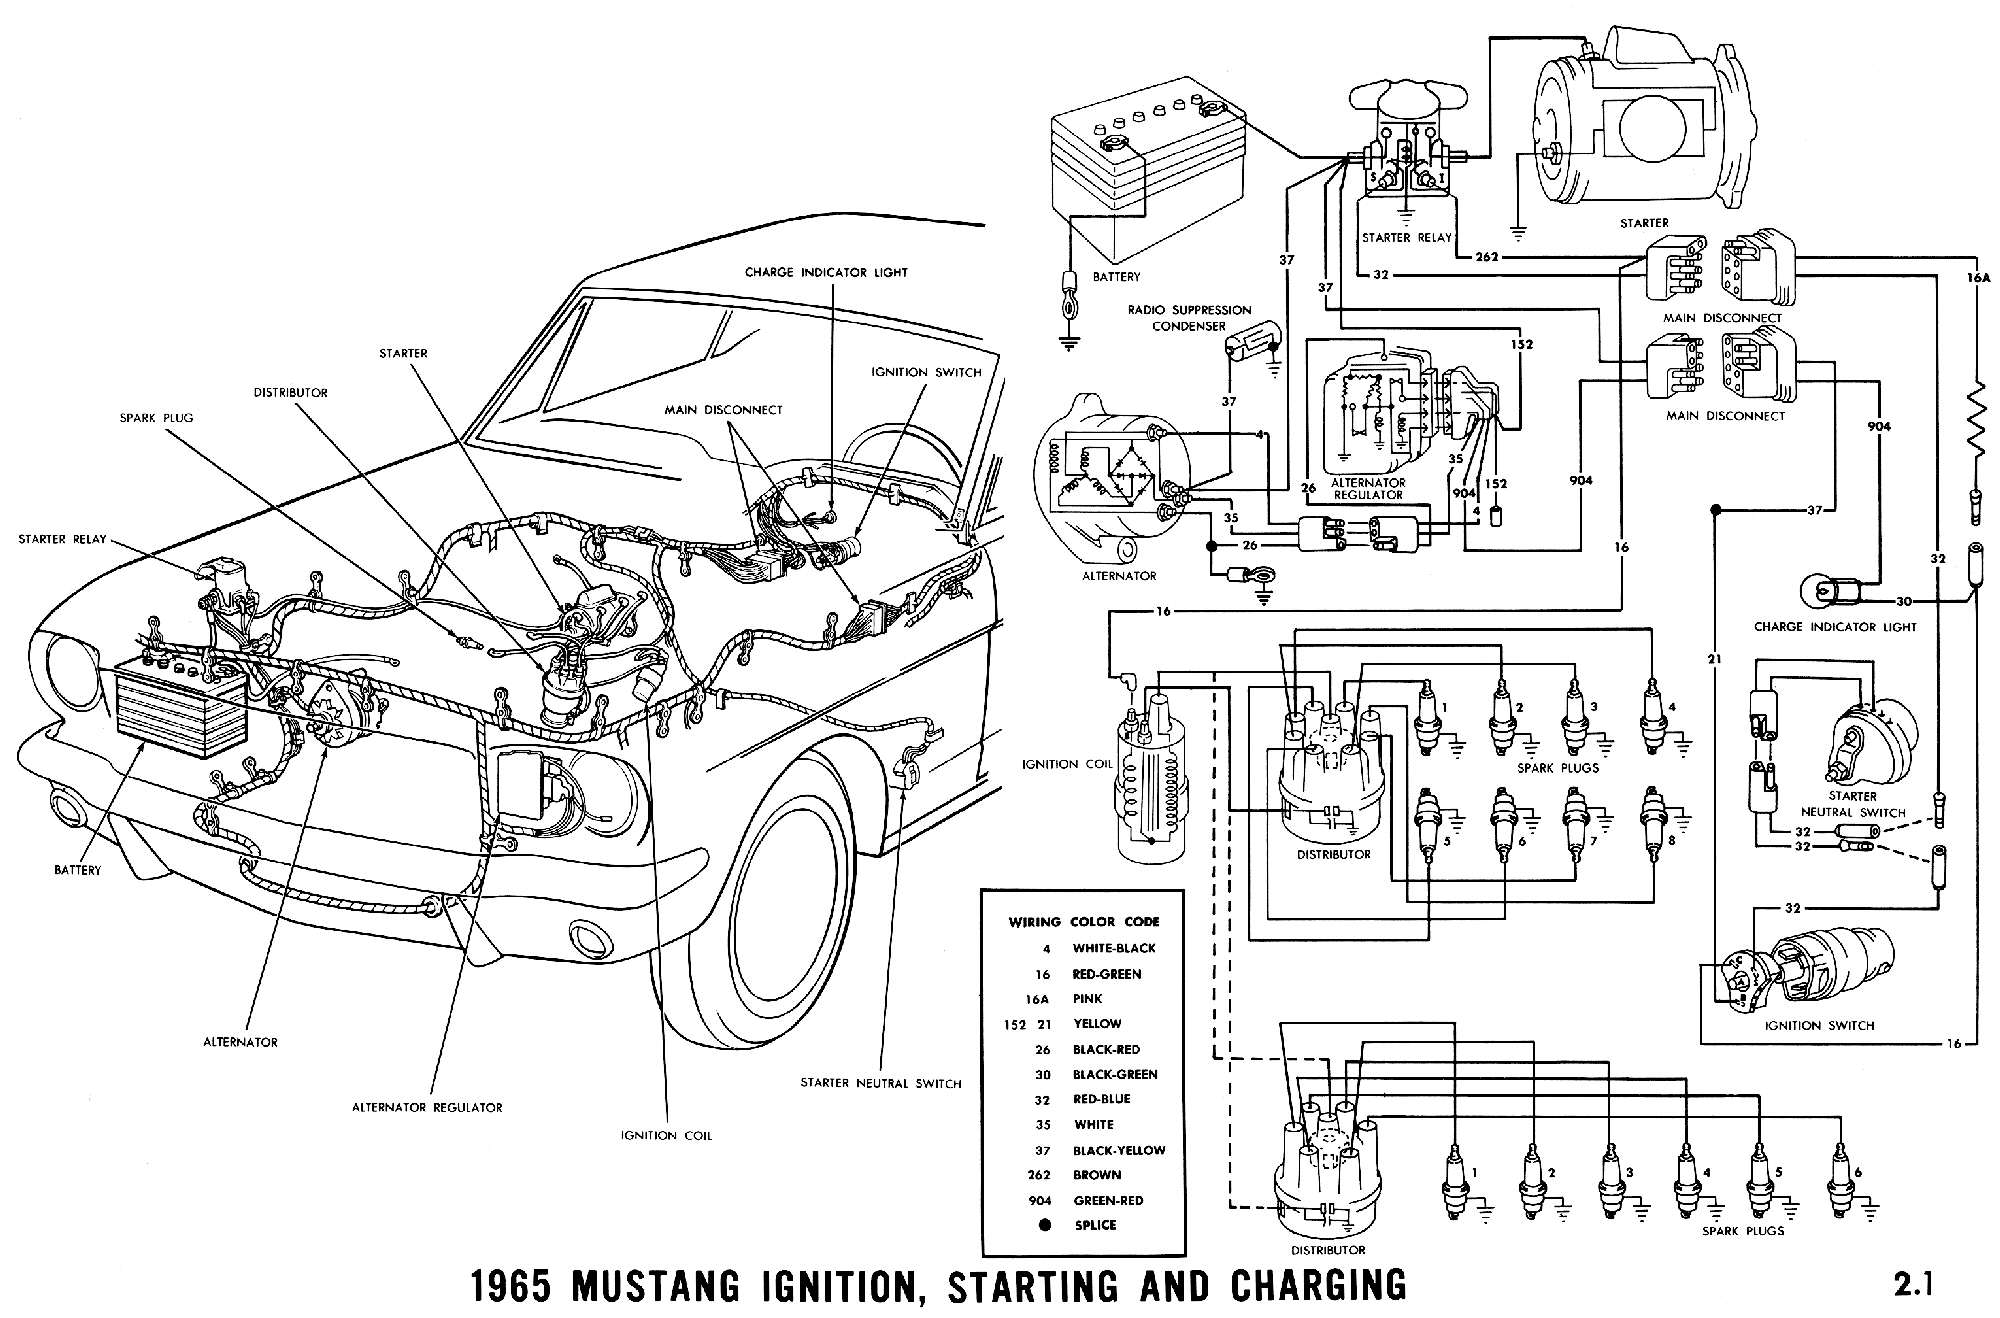 1965c 1965 mustang wiring diagrams average joe restoration 65 mustang dash wiring diagram at bayanpartner.co